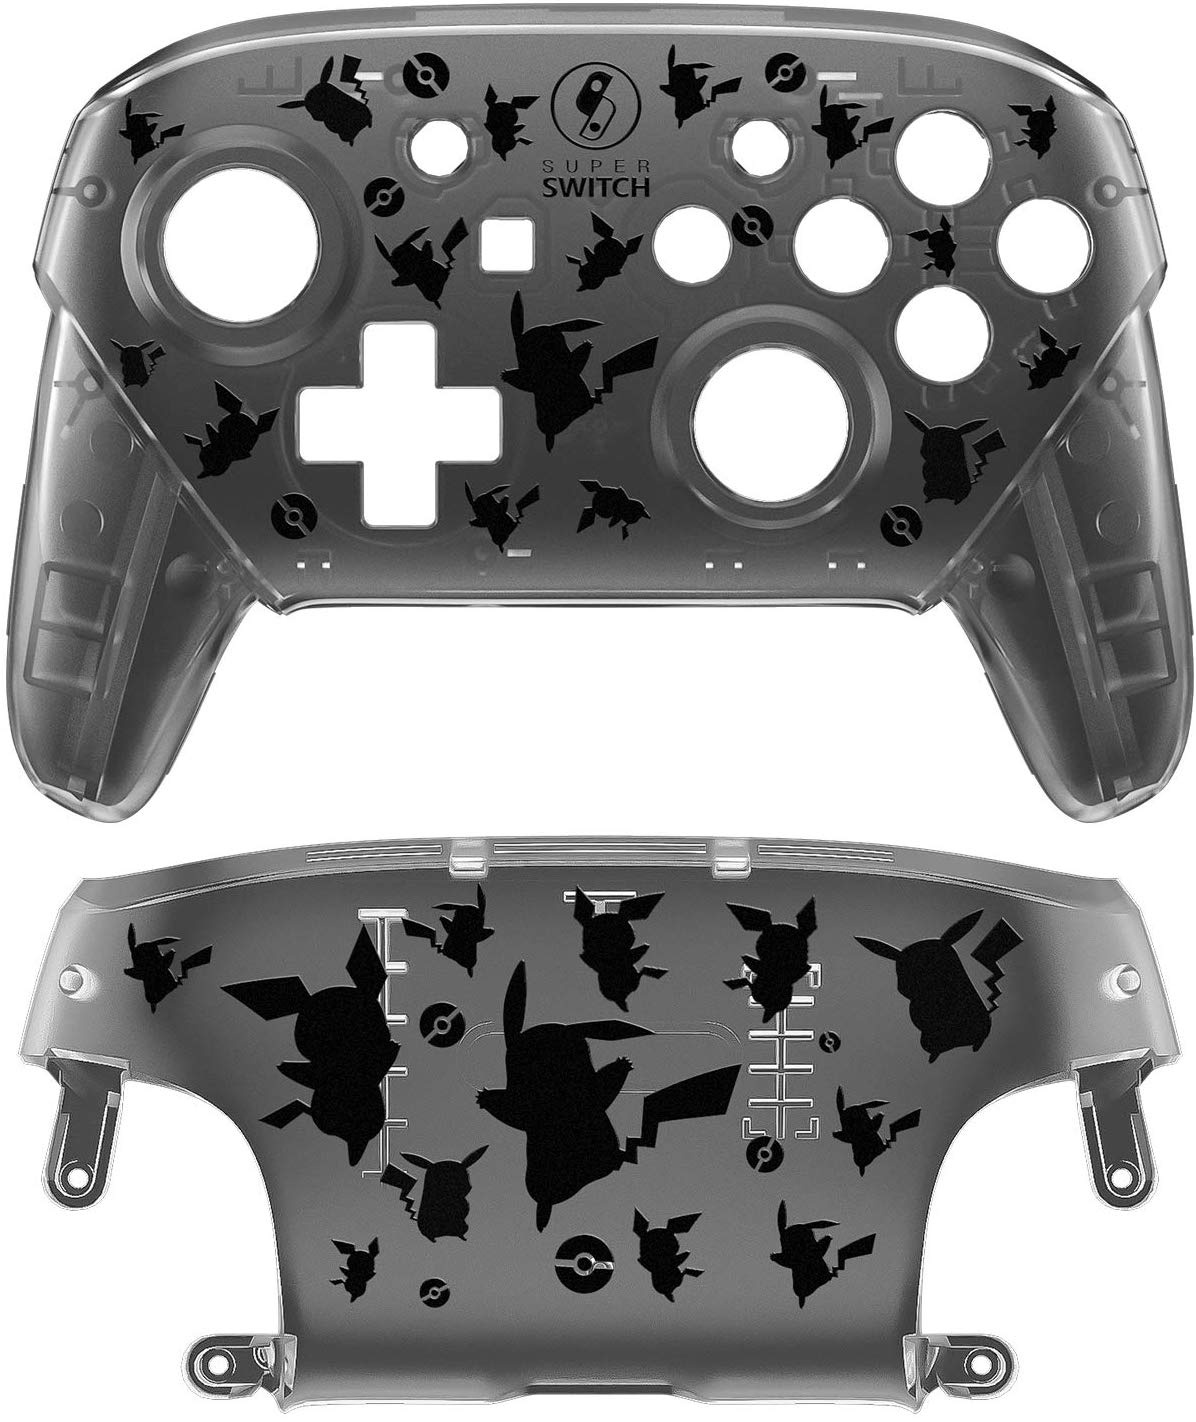 This Switch Pro Controller Replacement Shell Is Pokémon